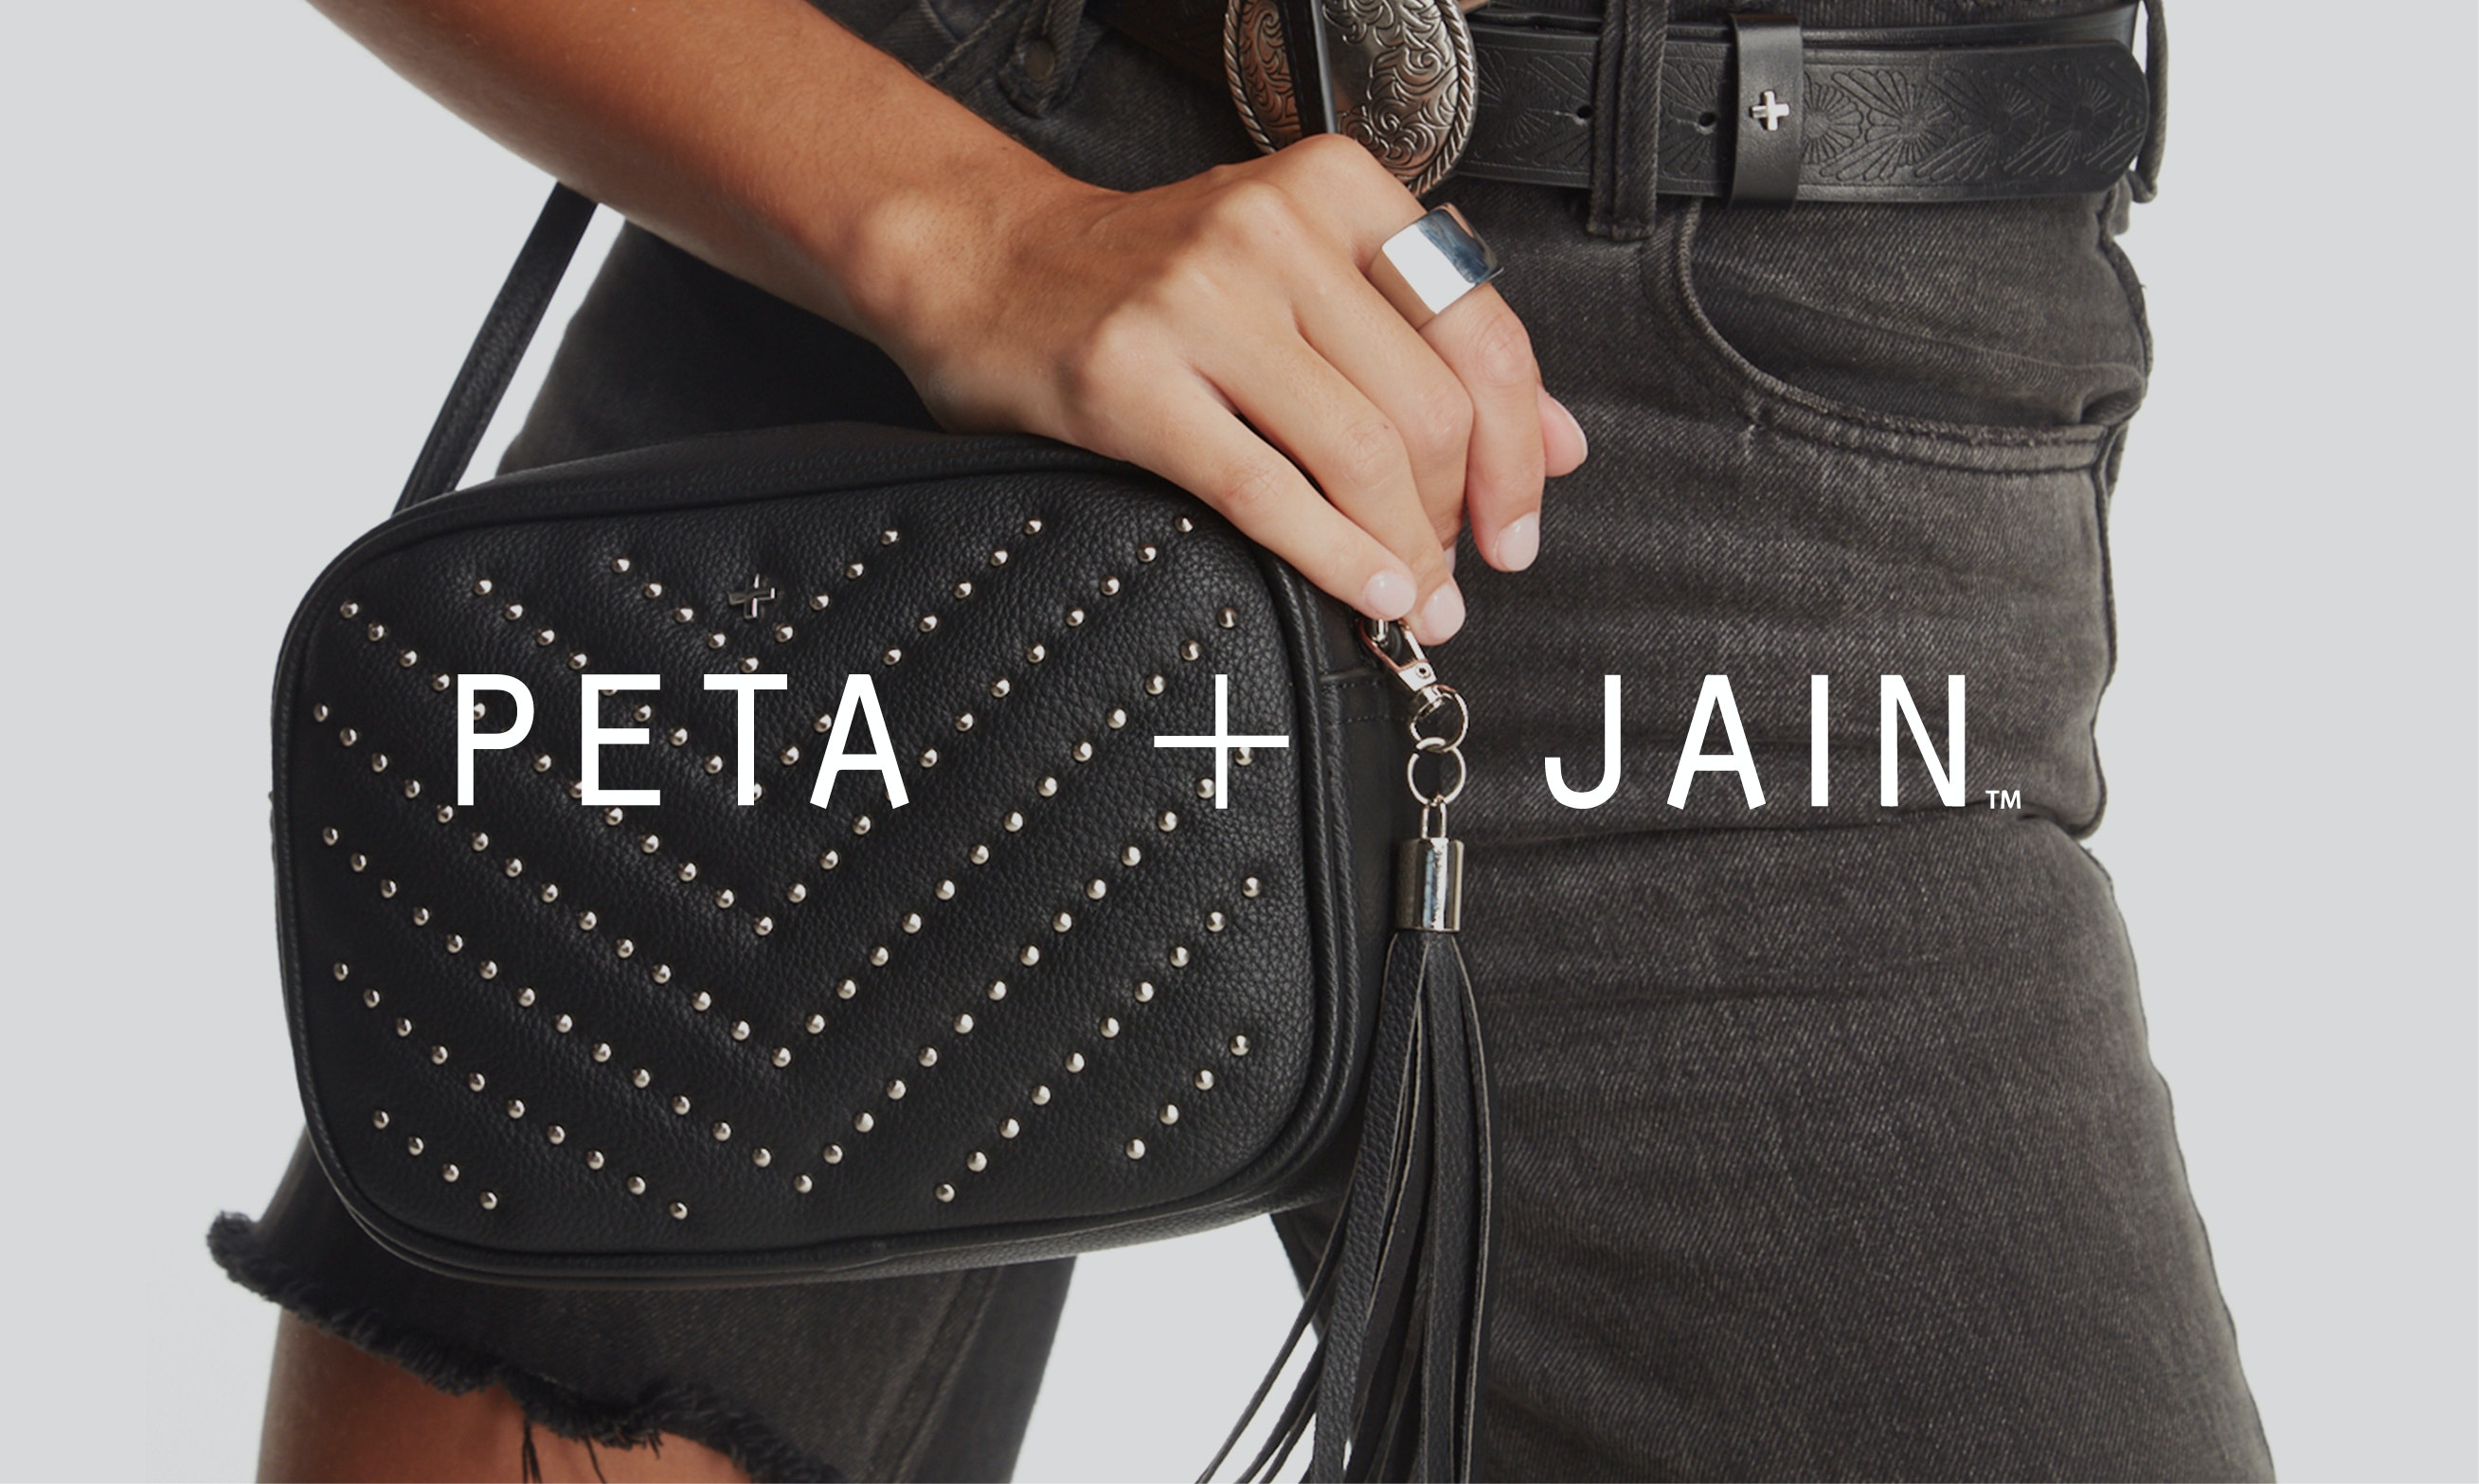 Shop Peta + Jain on Crèmm